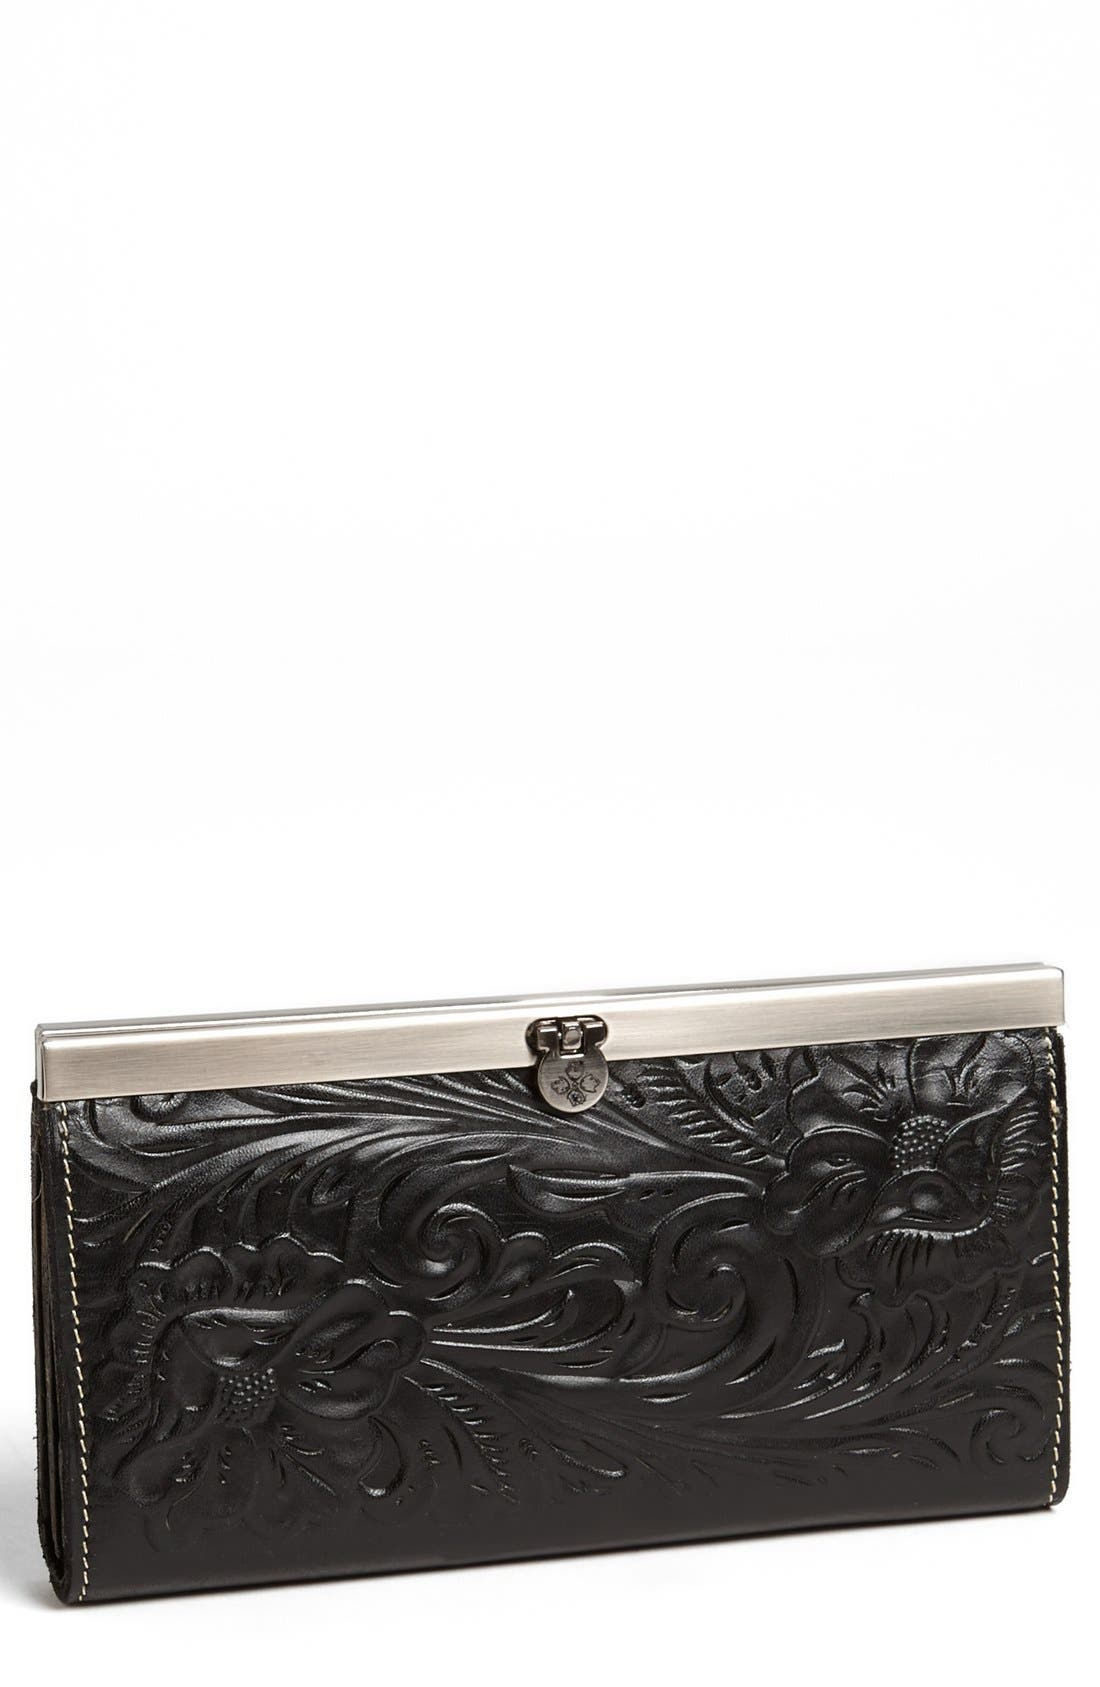 PATRICIA NASH 'Cauchy' Wallet, Main, color, 001